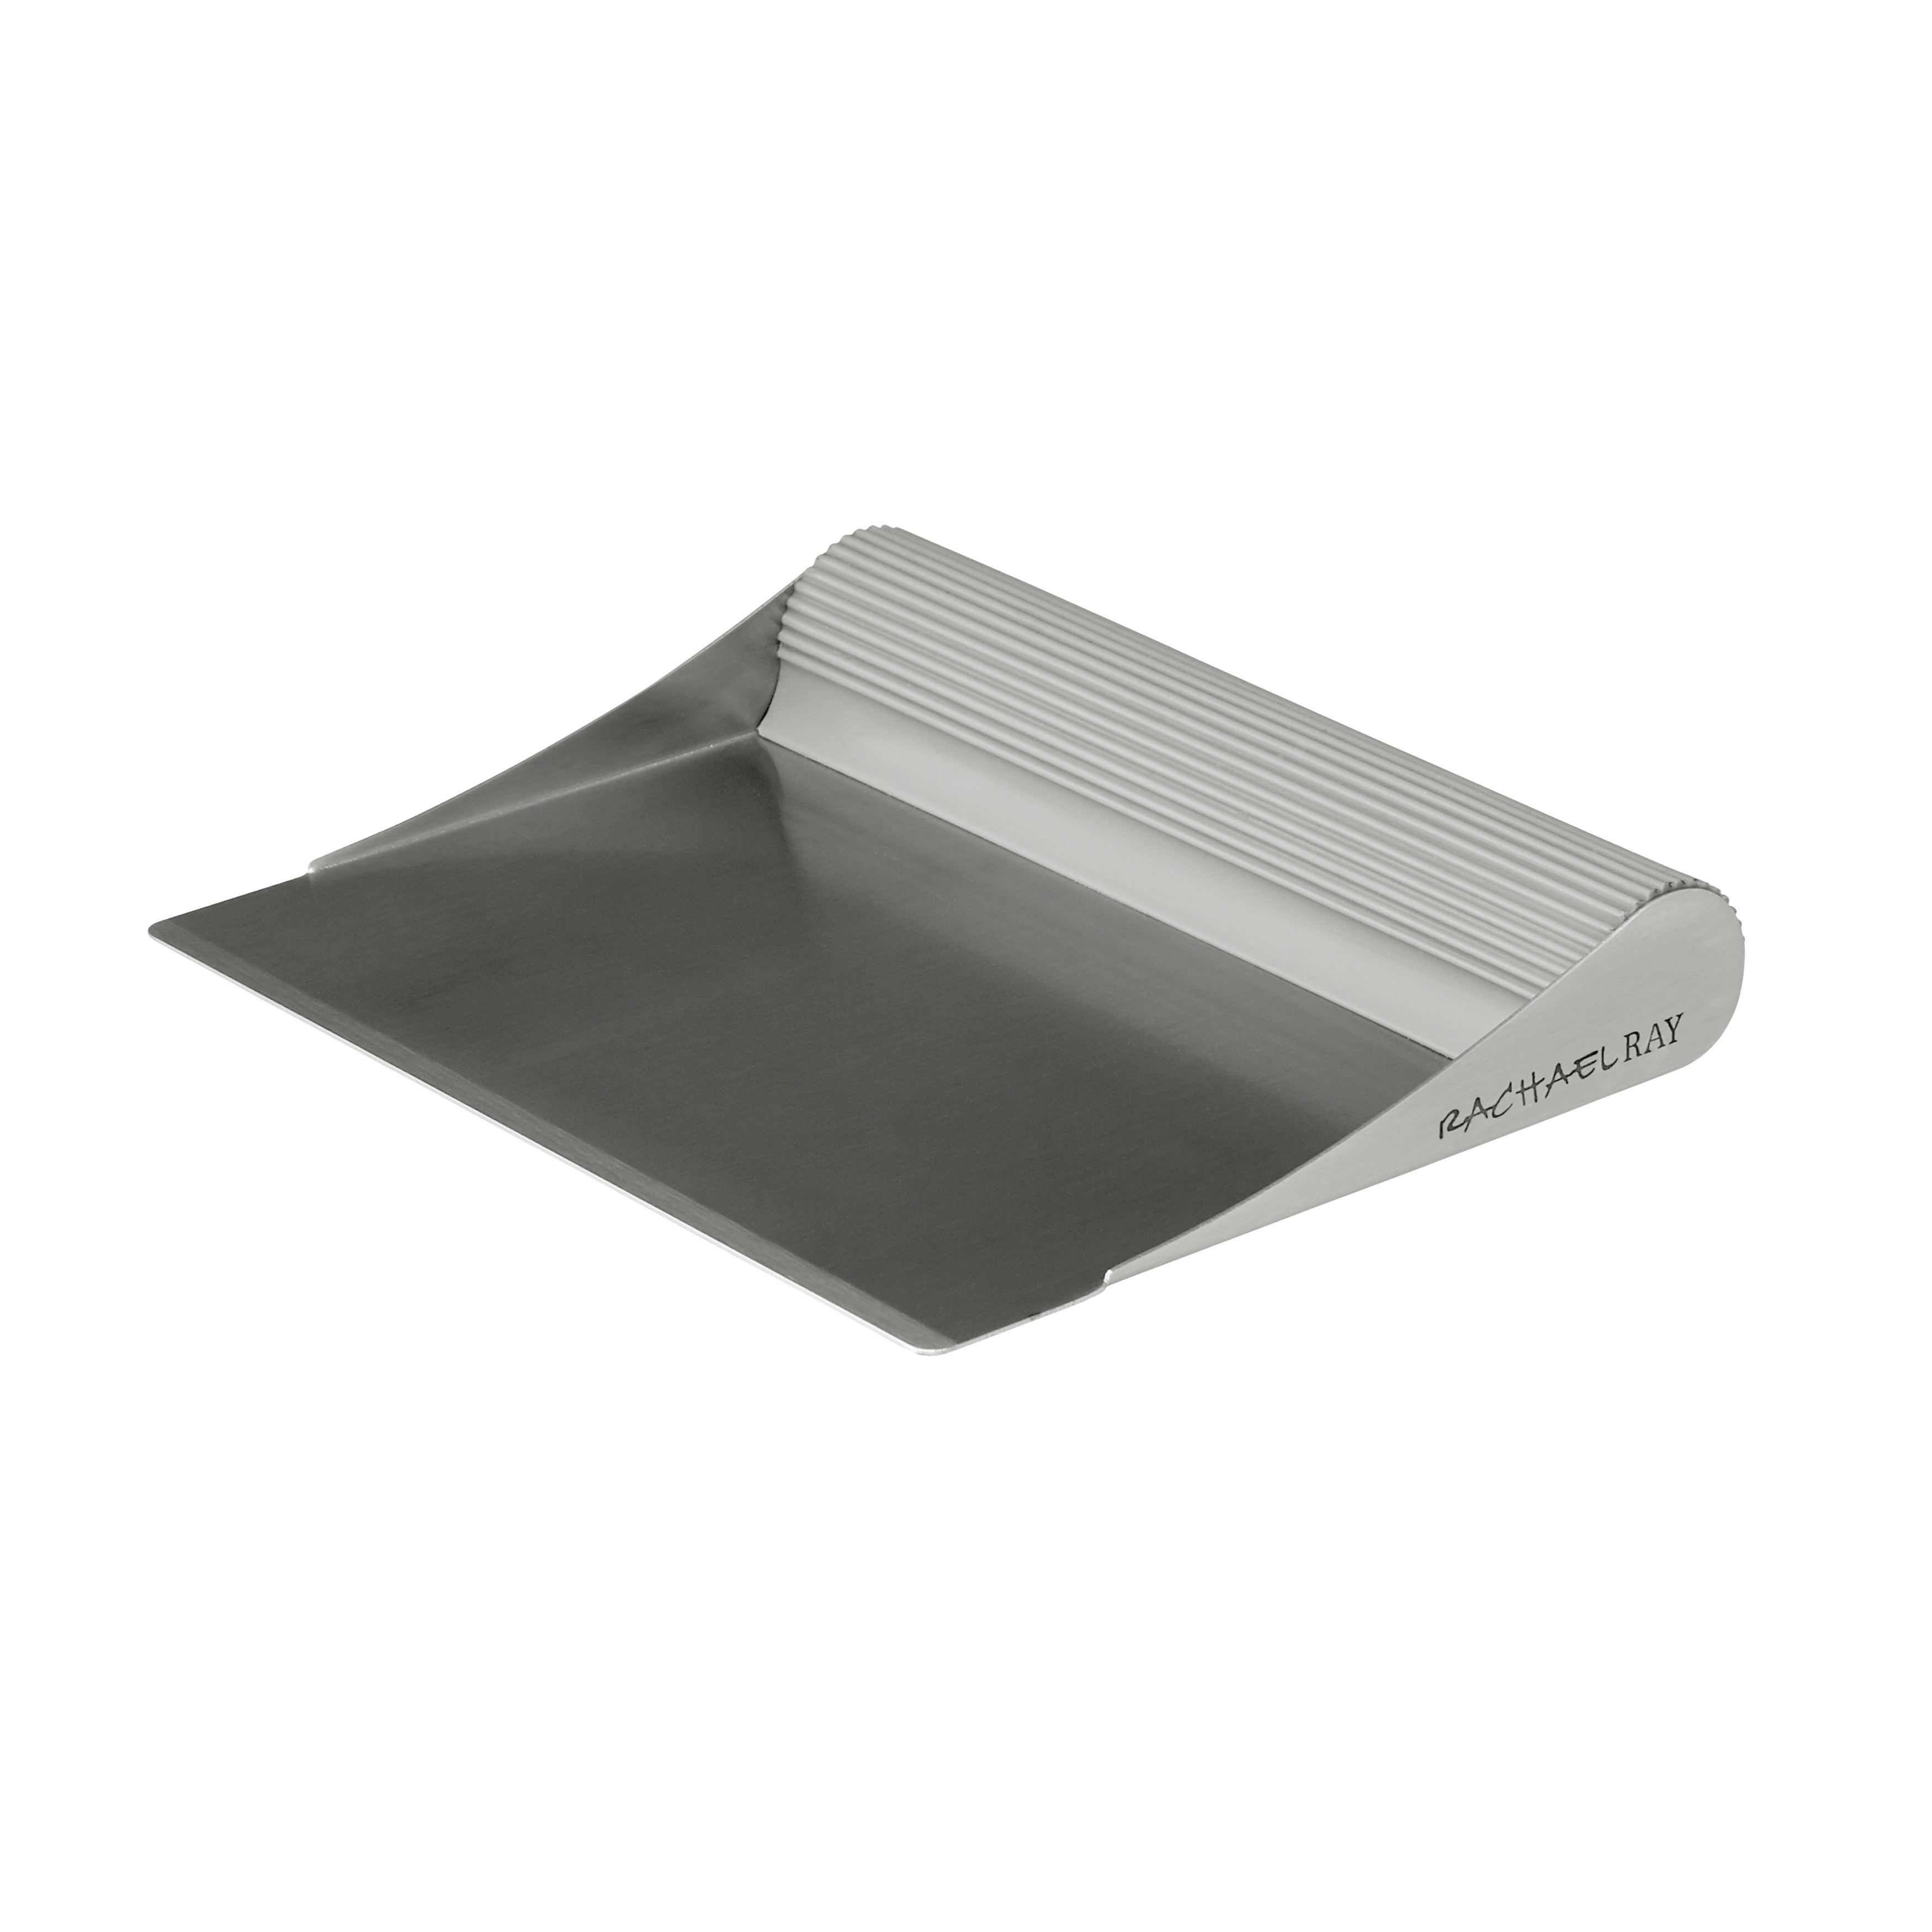 Rachael Ray Tools /& Gadgets Stainless Steel Bench Scrape Red